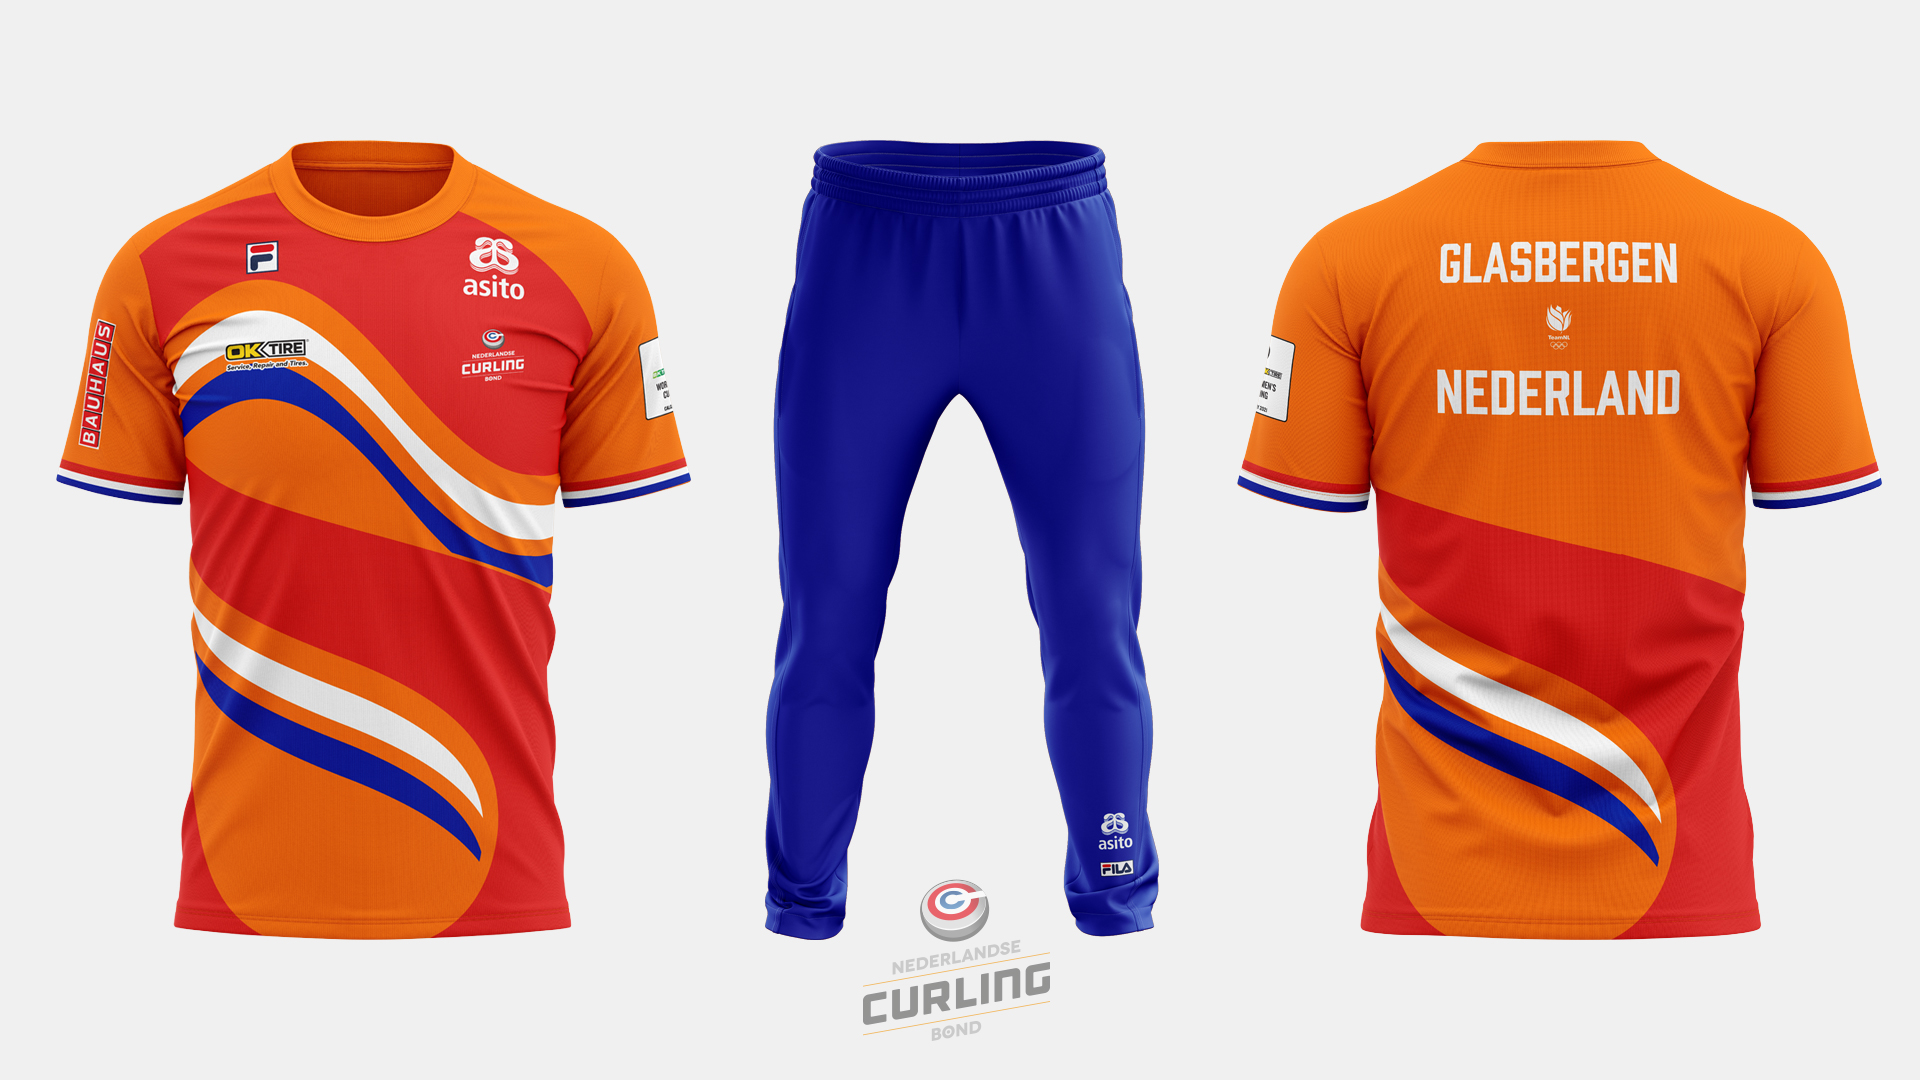 Team NL Curling jersey home